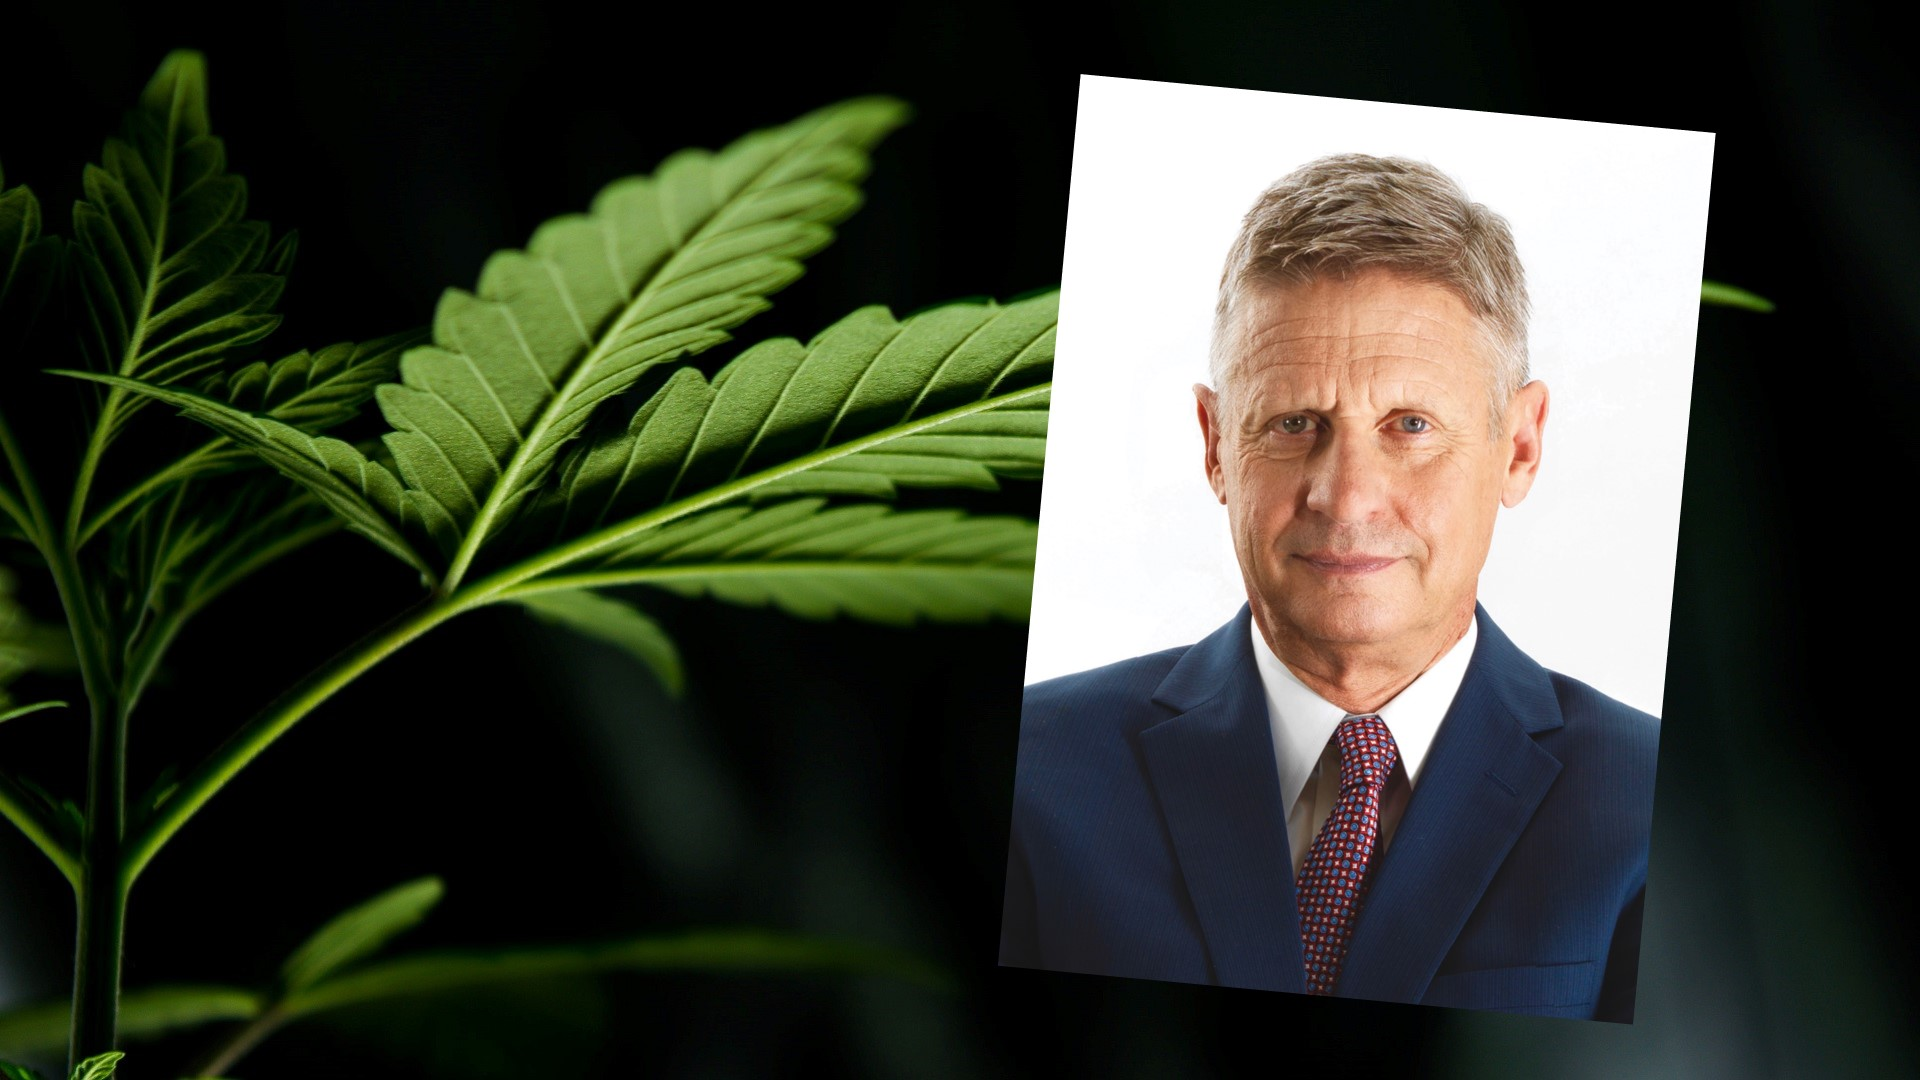 Growing Forward Gary Johnson